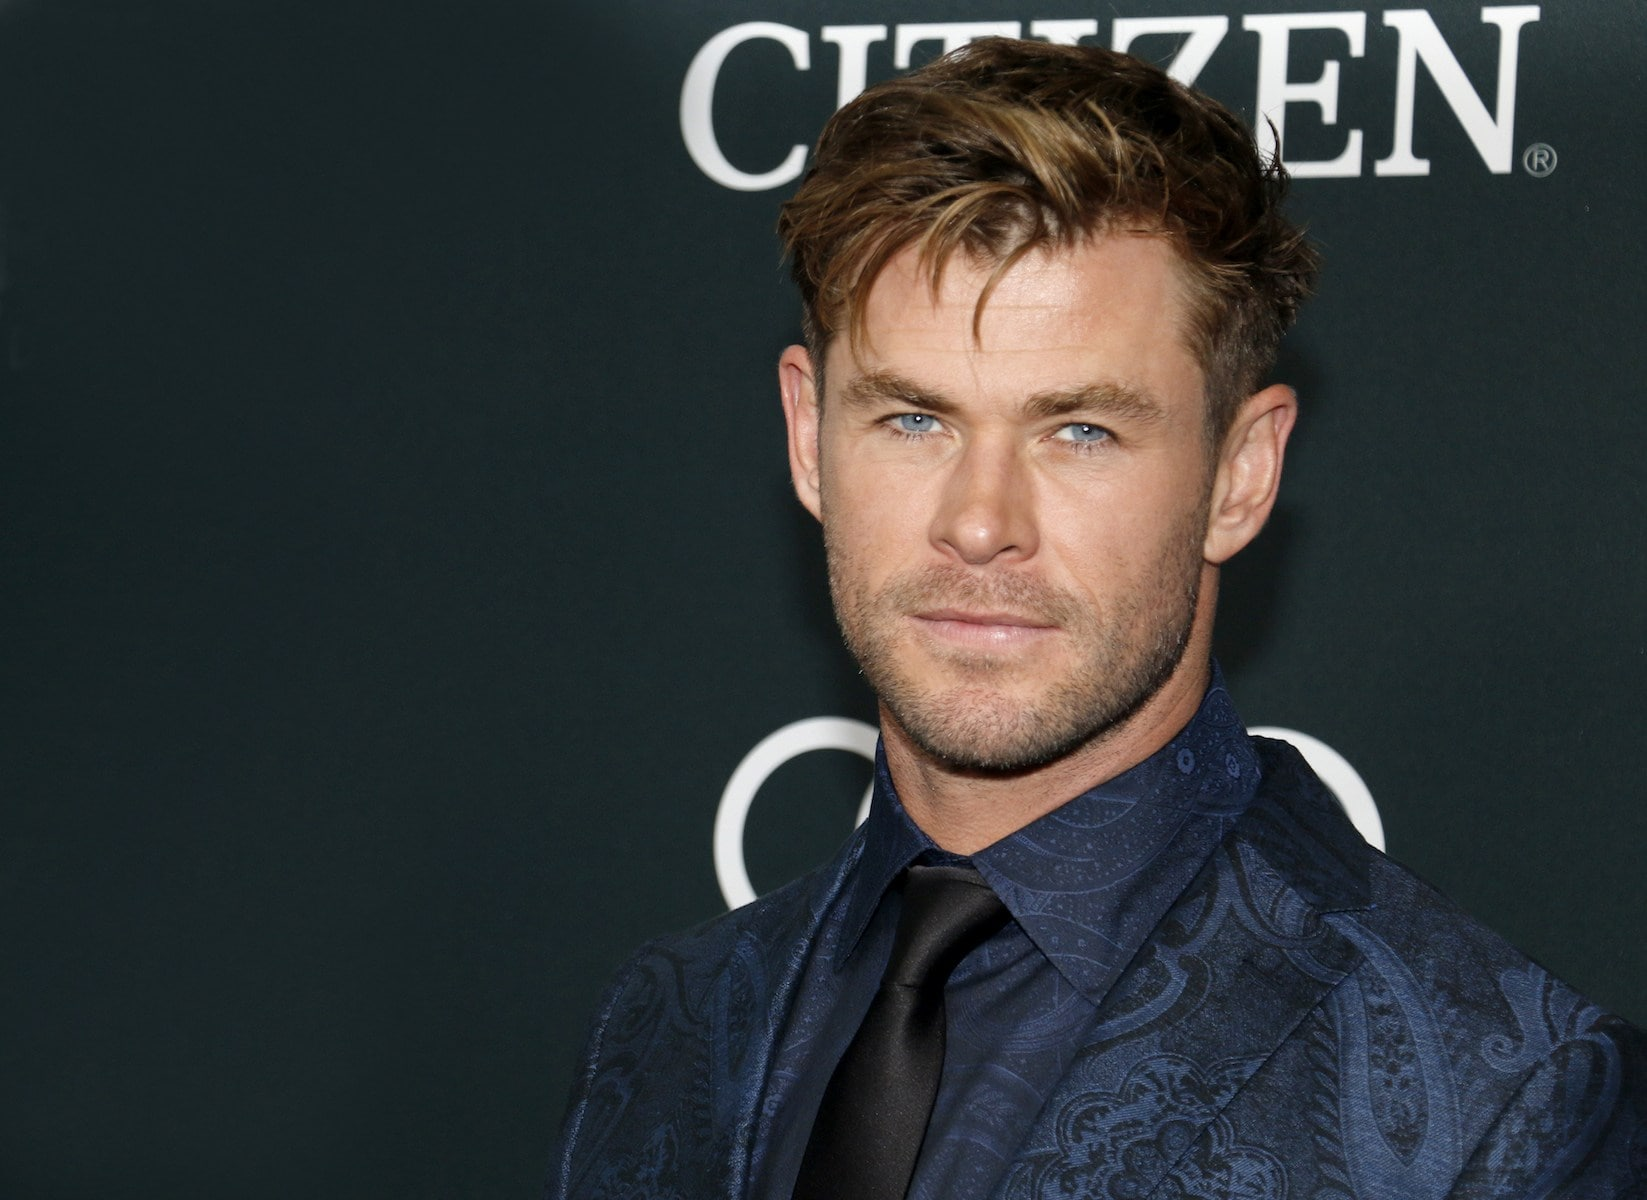 Variasi gaya undercut Chris Hemsworth